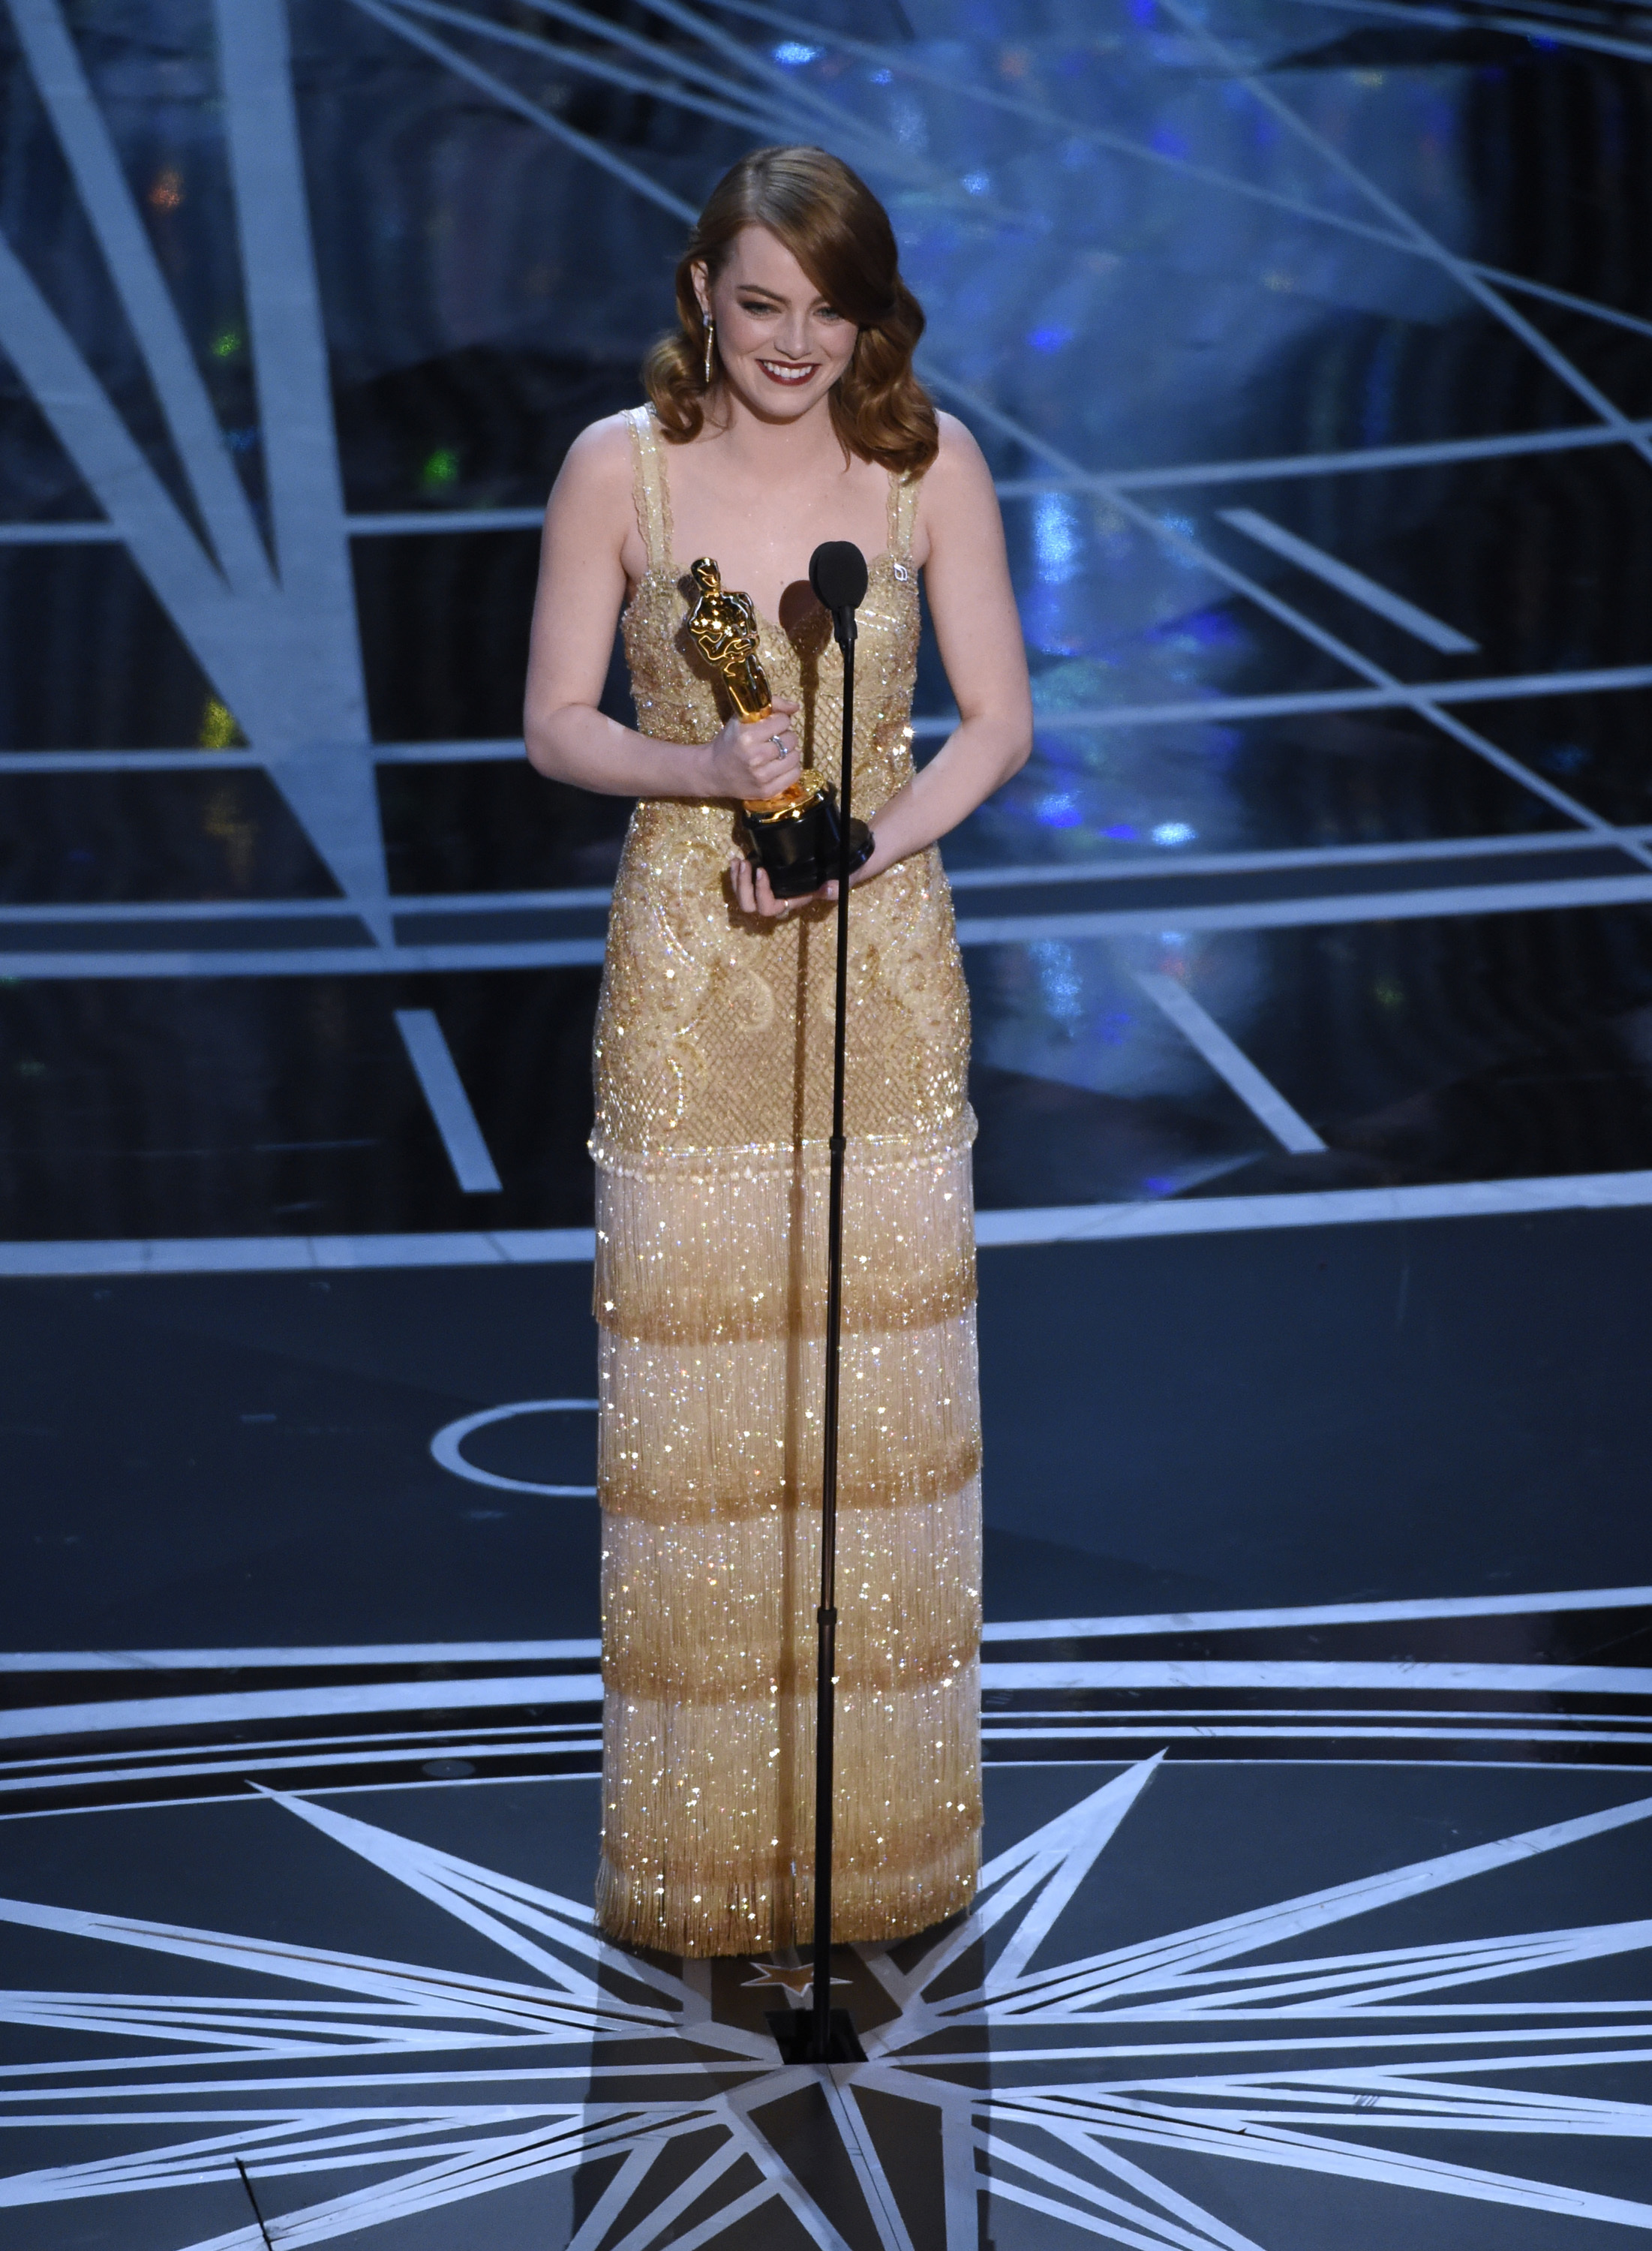 <div class='meta'><div class='origin-logo' data-origin='AP'></div><span class='caption-text' data-credit='2017 Best Actress winner Emma Stone'>Emma Stone accepts the award for best actress in a leading role for &#34;La La Land&#34; at the Oscars on Sunday, Feb. 26, 2017. (Photo by Chris Pizzello/Invision/AP)</span></div>